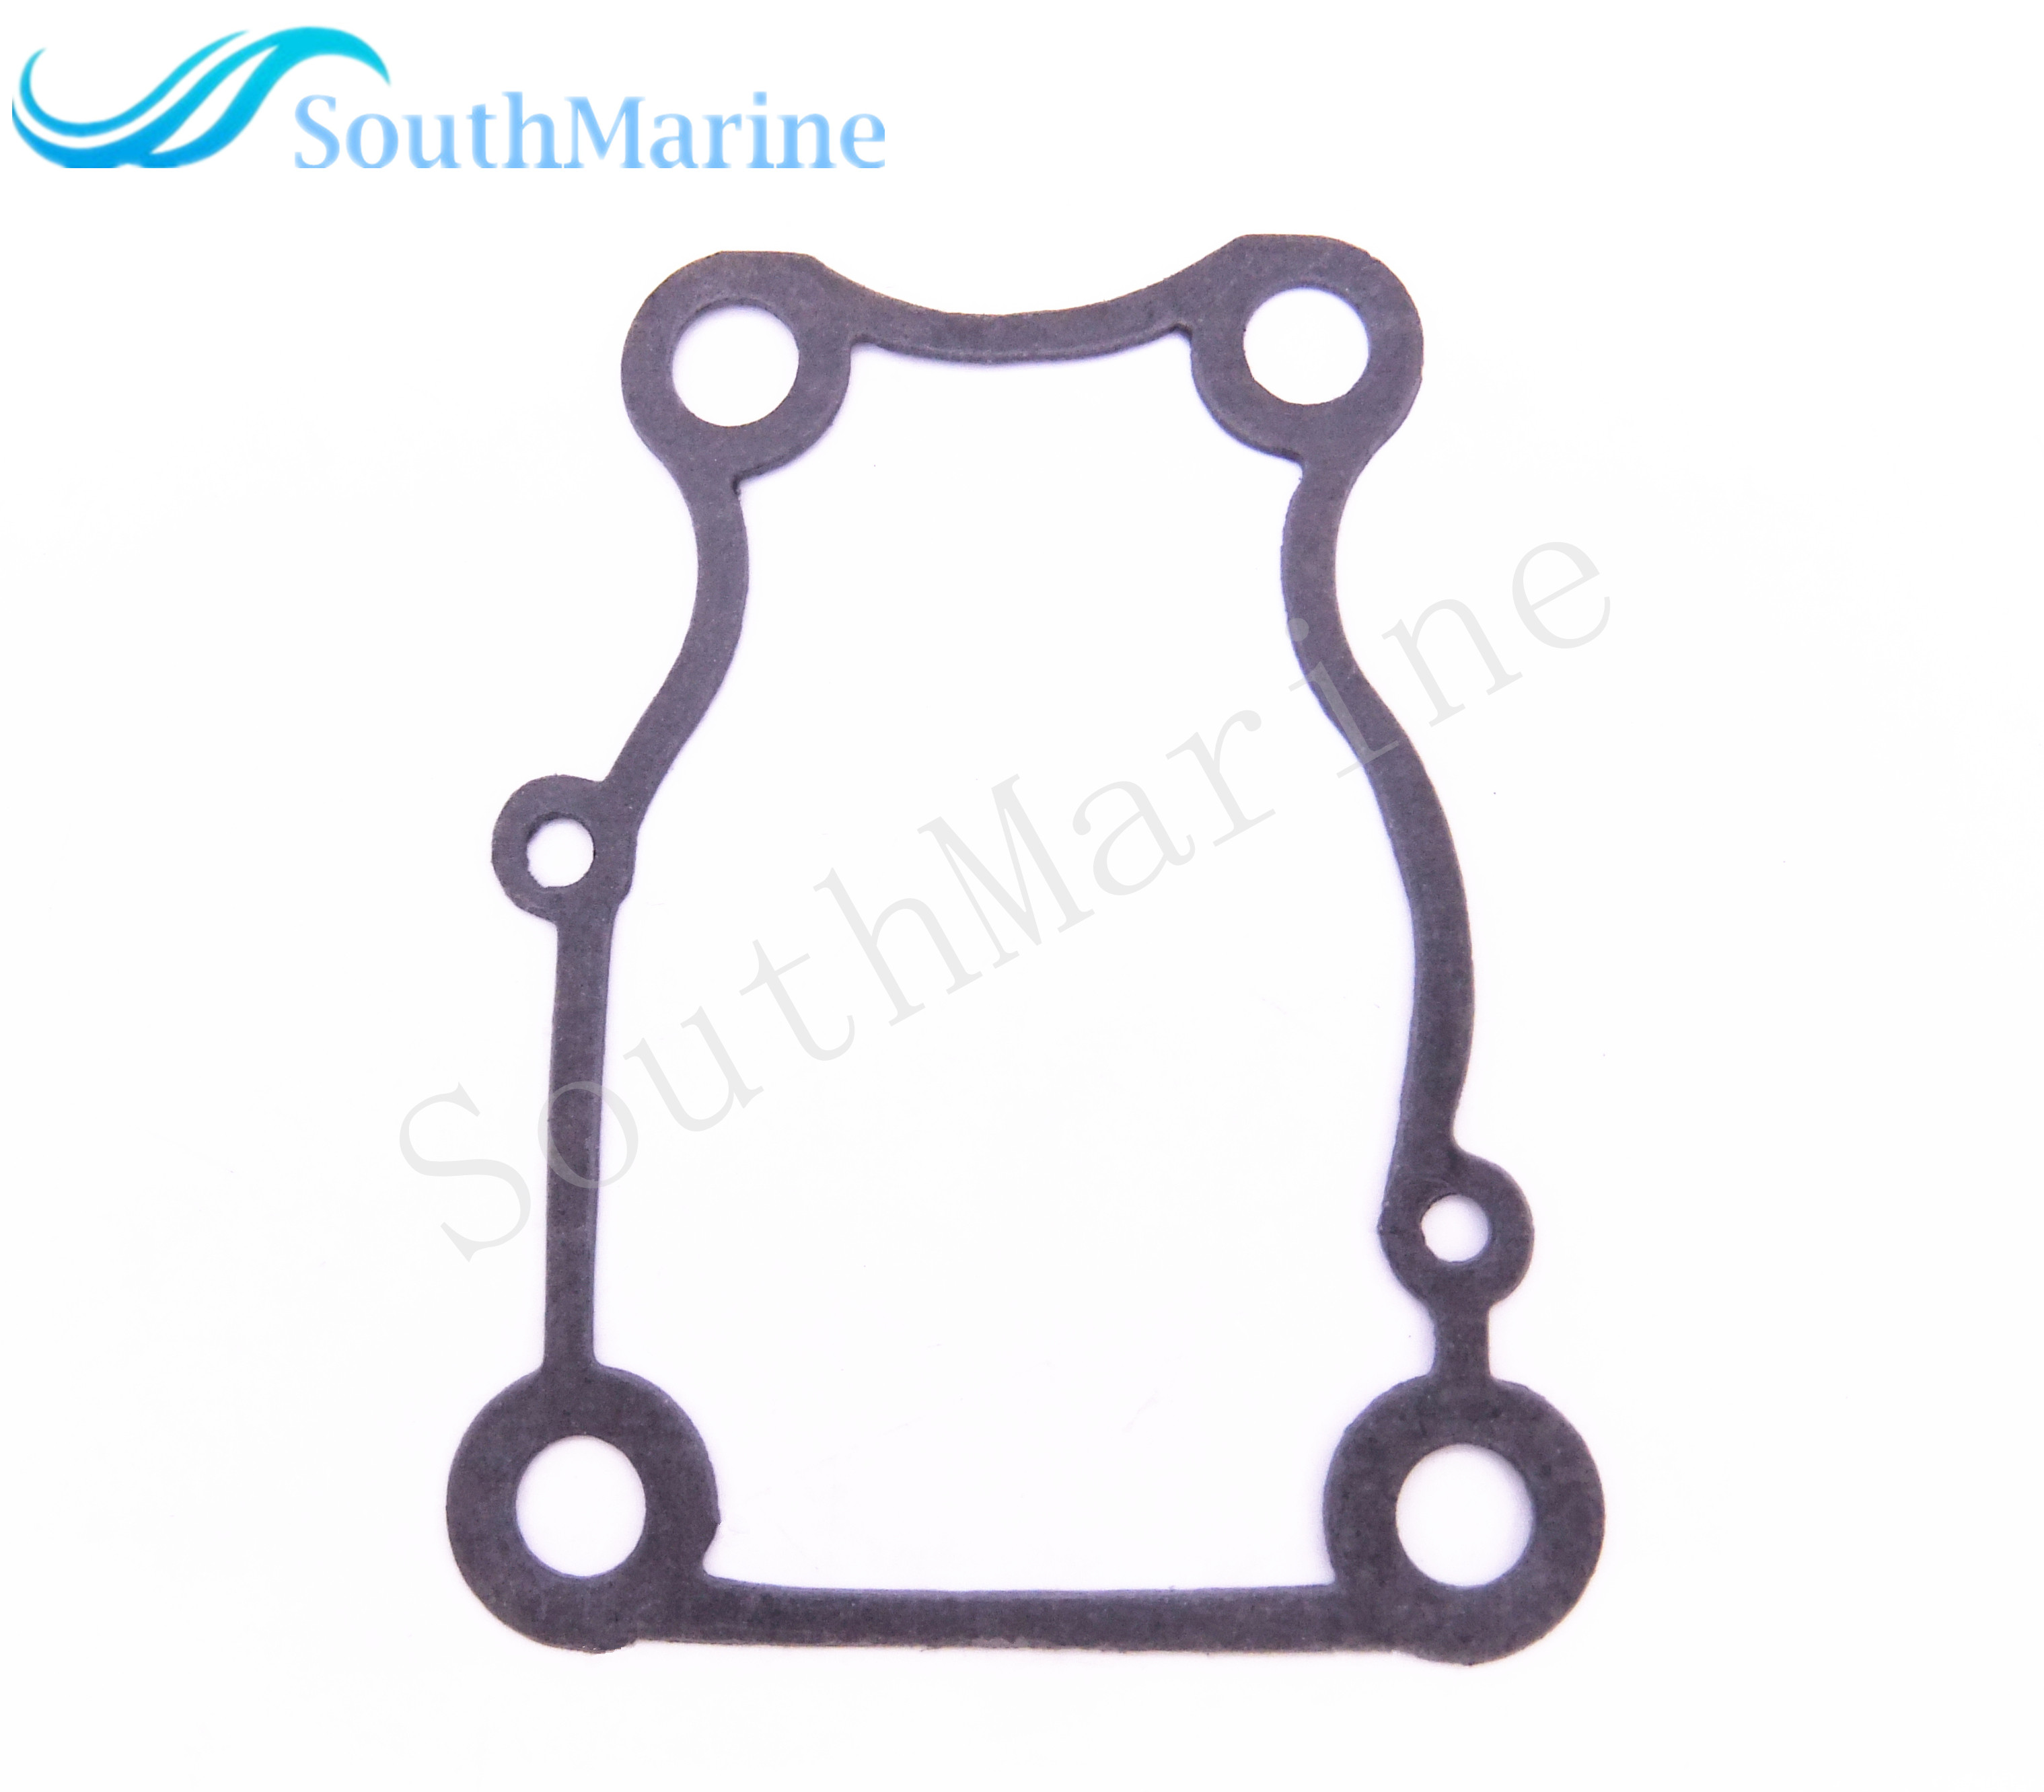 Boat Motor 63D-44316-00 Water Pump Gasket for Yamaha 2-Stroke 2-stroke 40HP E40X 40X Outboard Engine